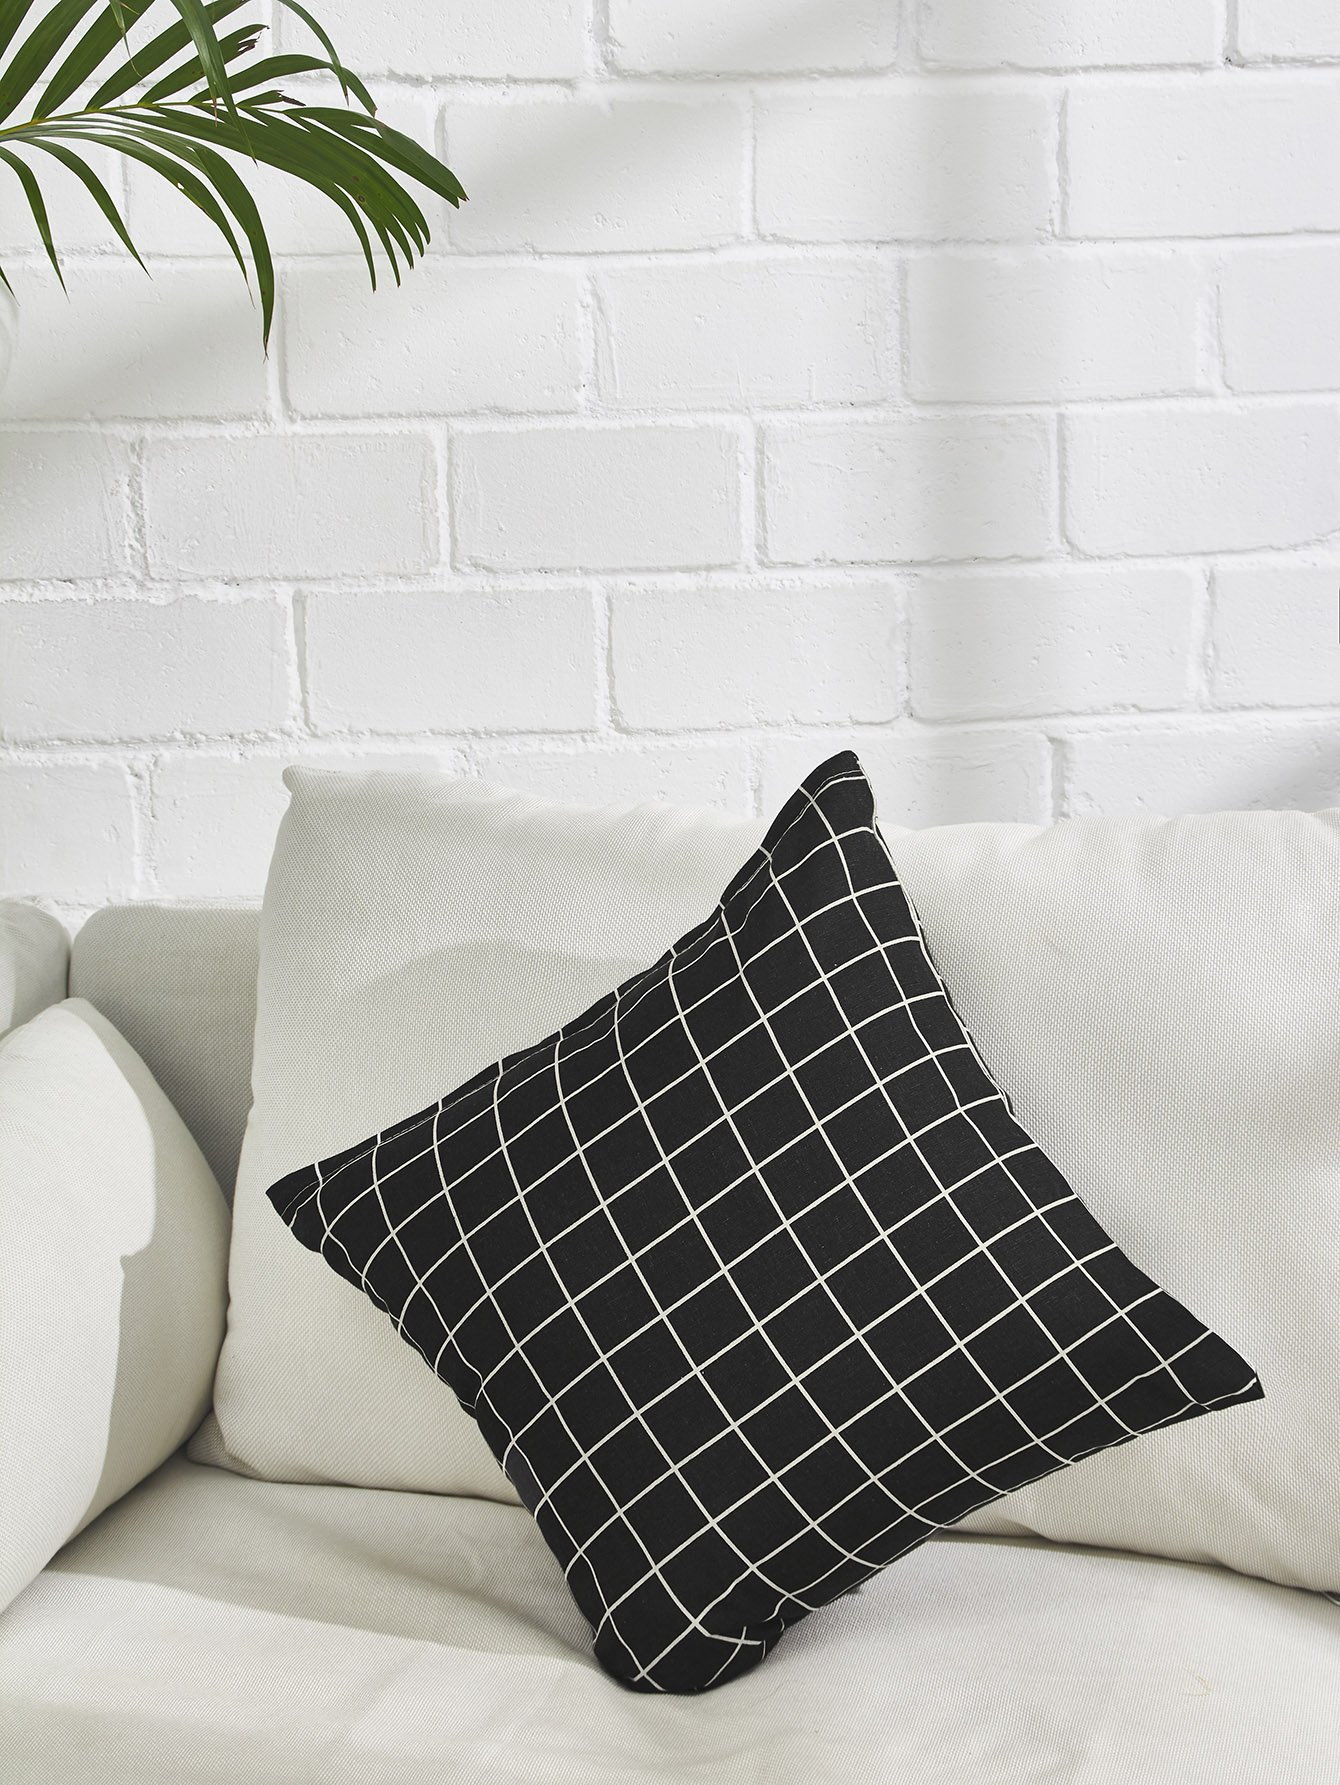 Allover Grid Print Pillowcase Cover allover grid print pillowcase cover